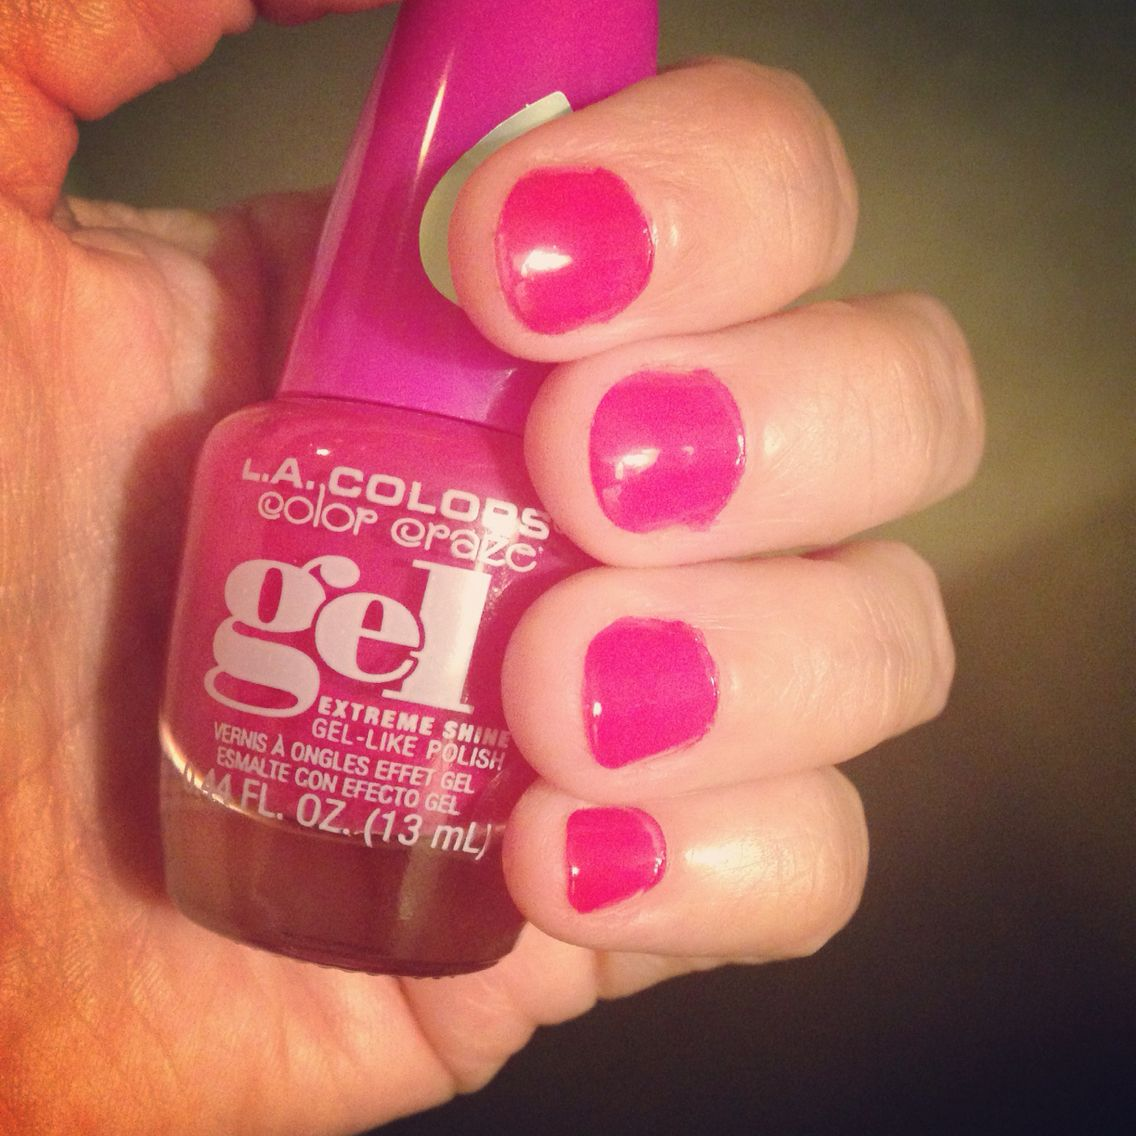 LA Colors Gel in Muse! Love this stuff!!! $2 at Family Dollar